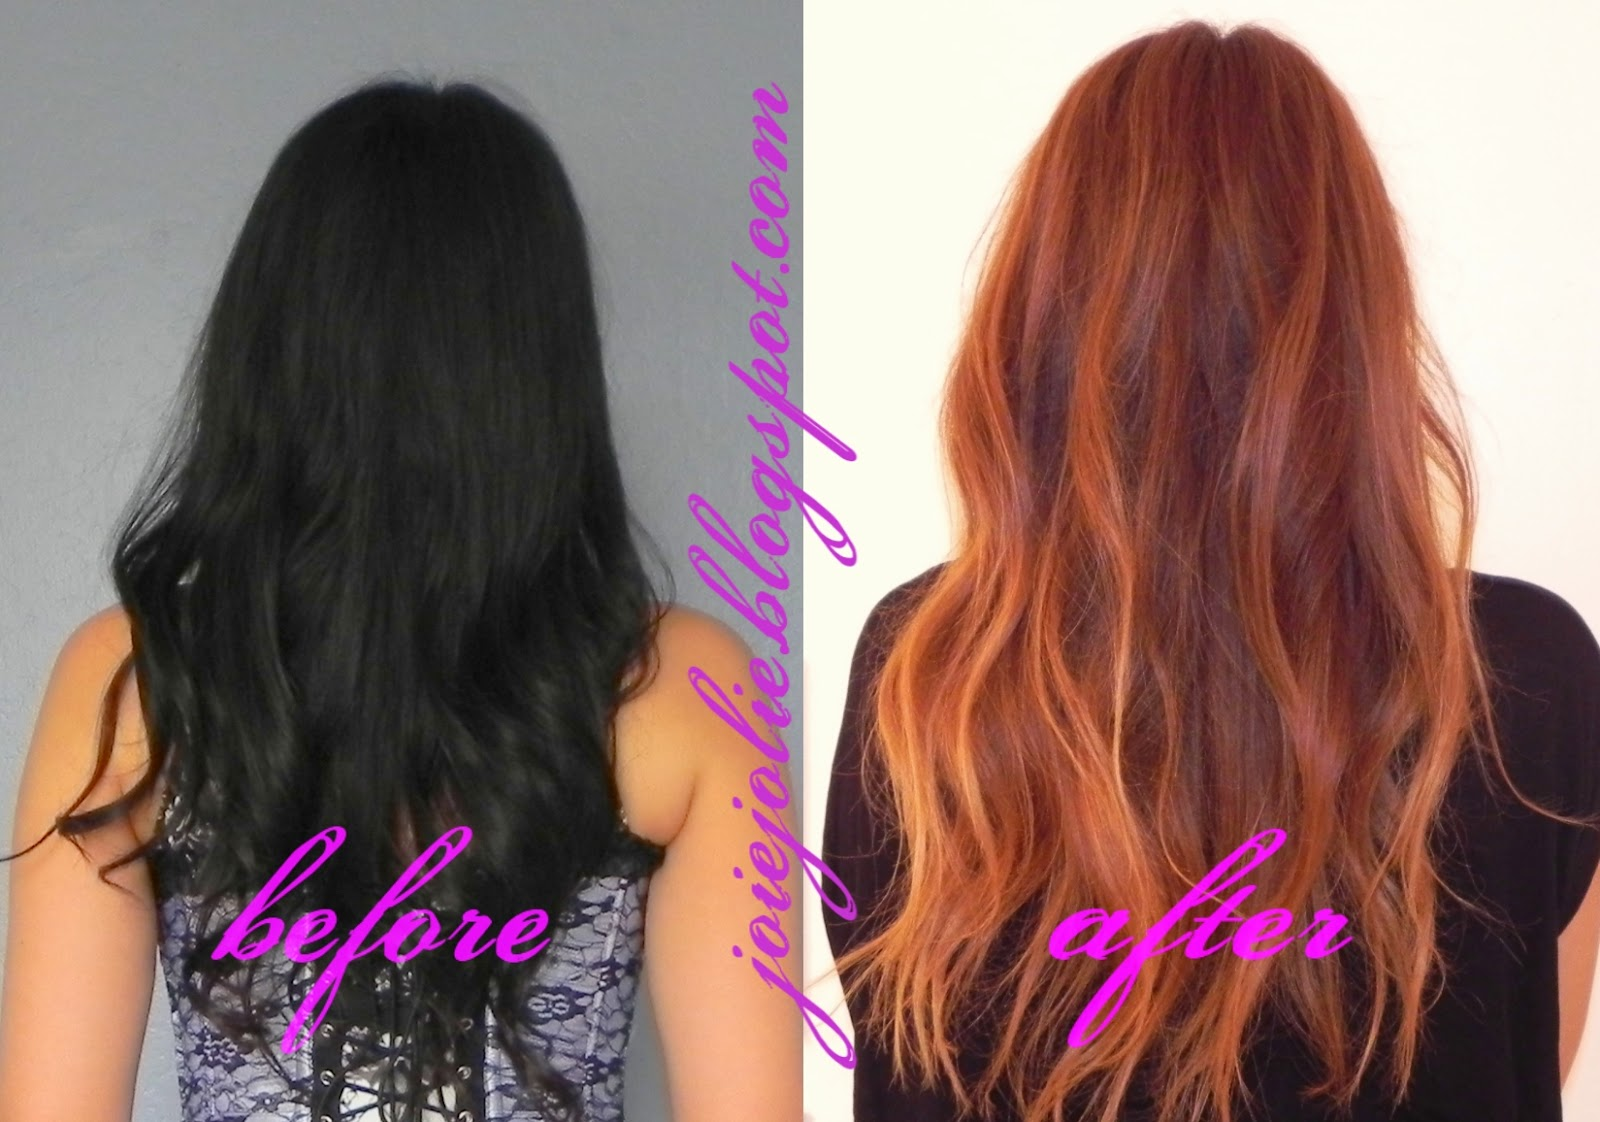 Joie Jolie Diy Black Asian Hair To Light Brown With Balayage And Ombre